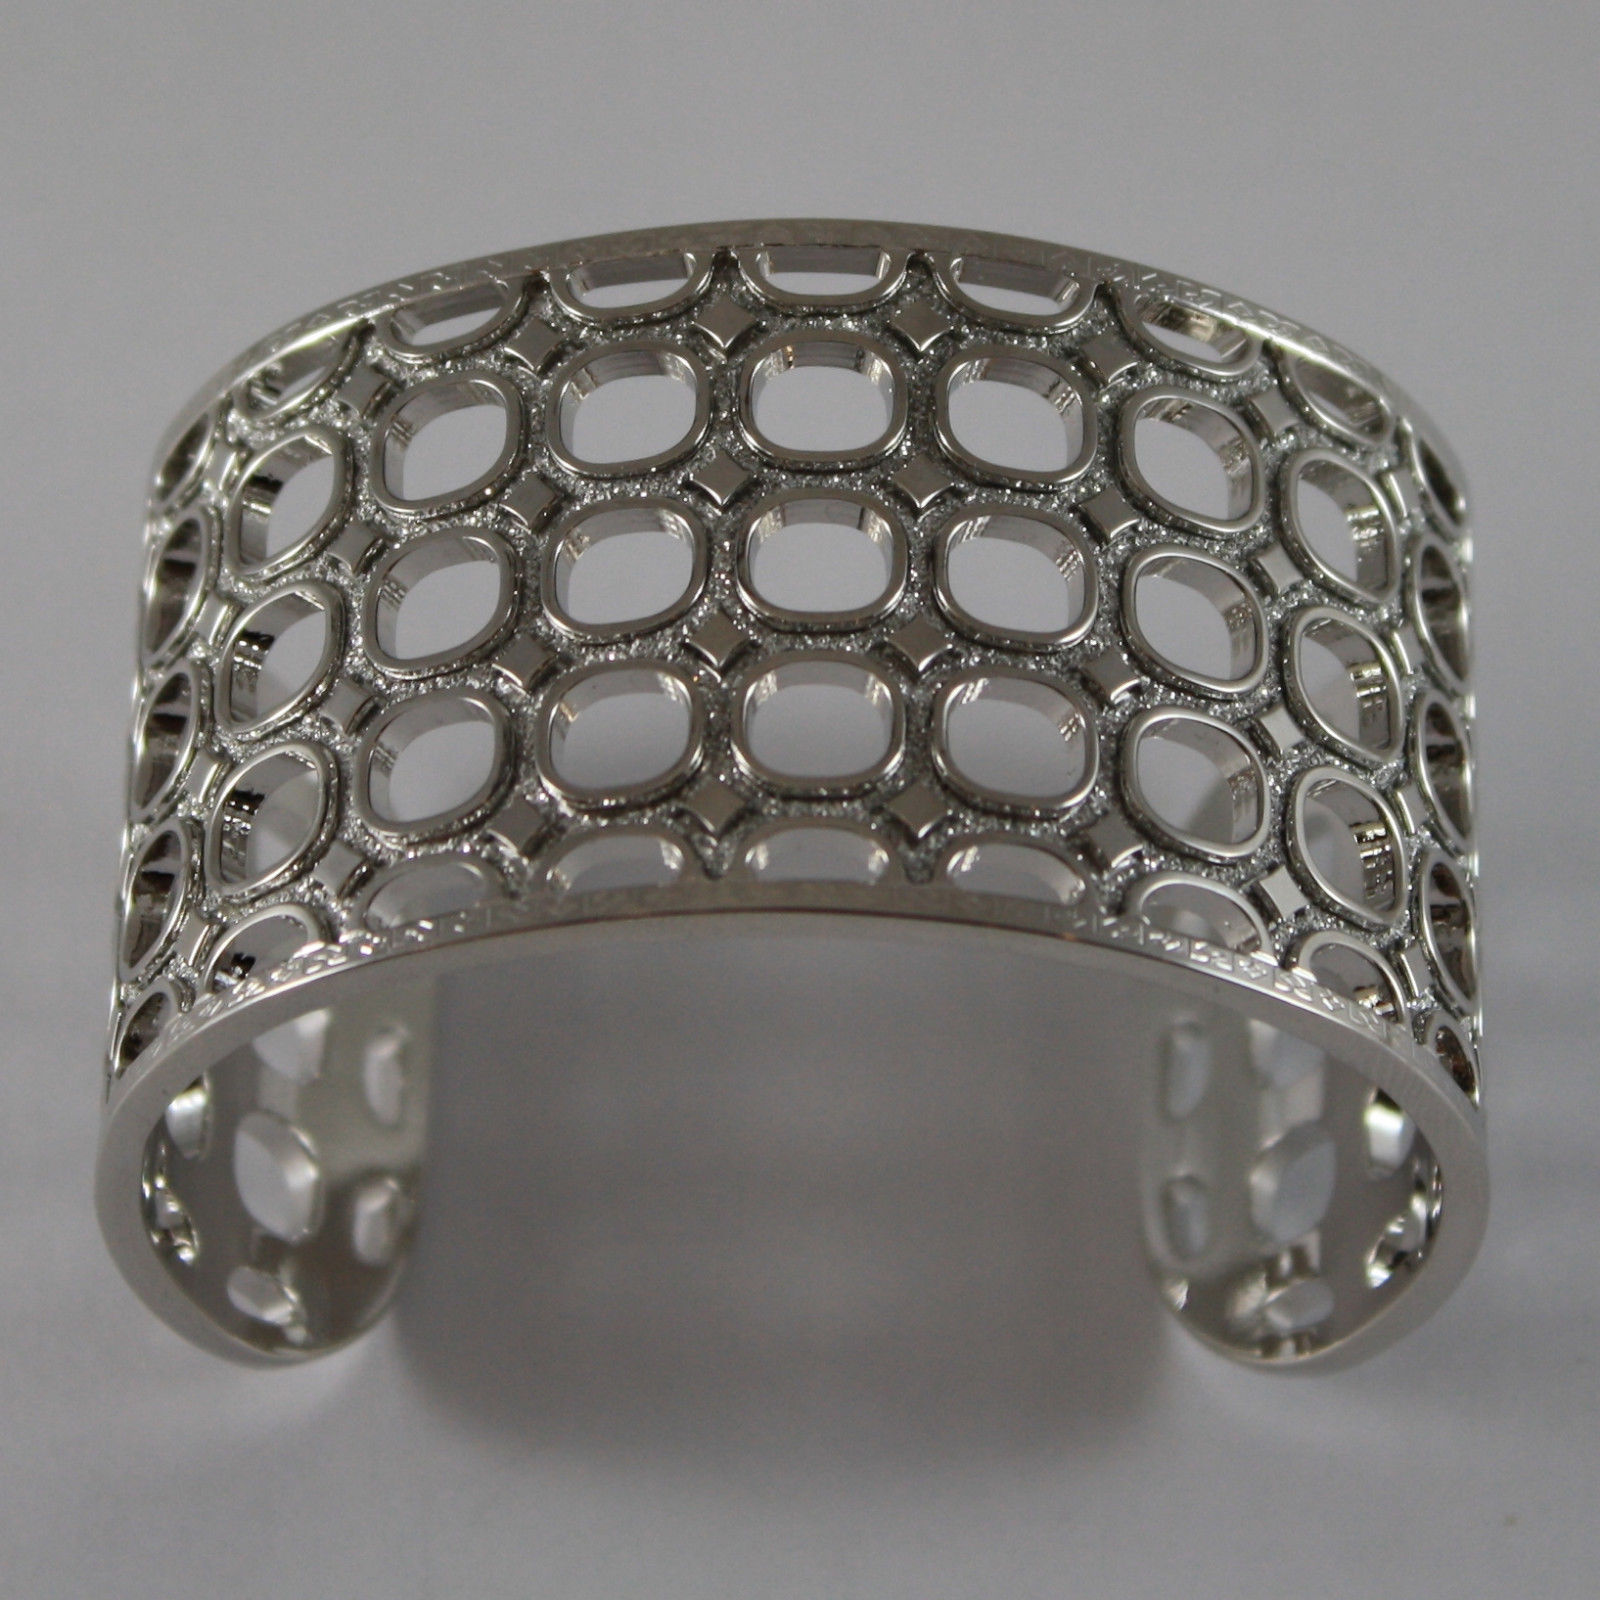 RHODIUM PLATED BRONZE REBECCA BRACELET WITH SQUARES B70BBB04 DIAMETER 2.1 INCHES